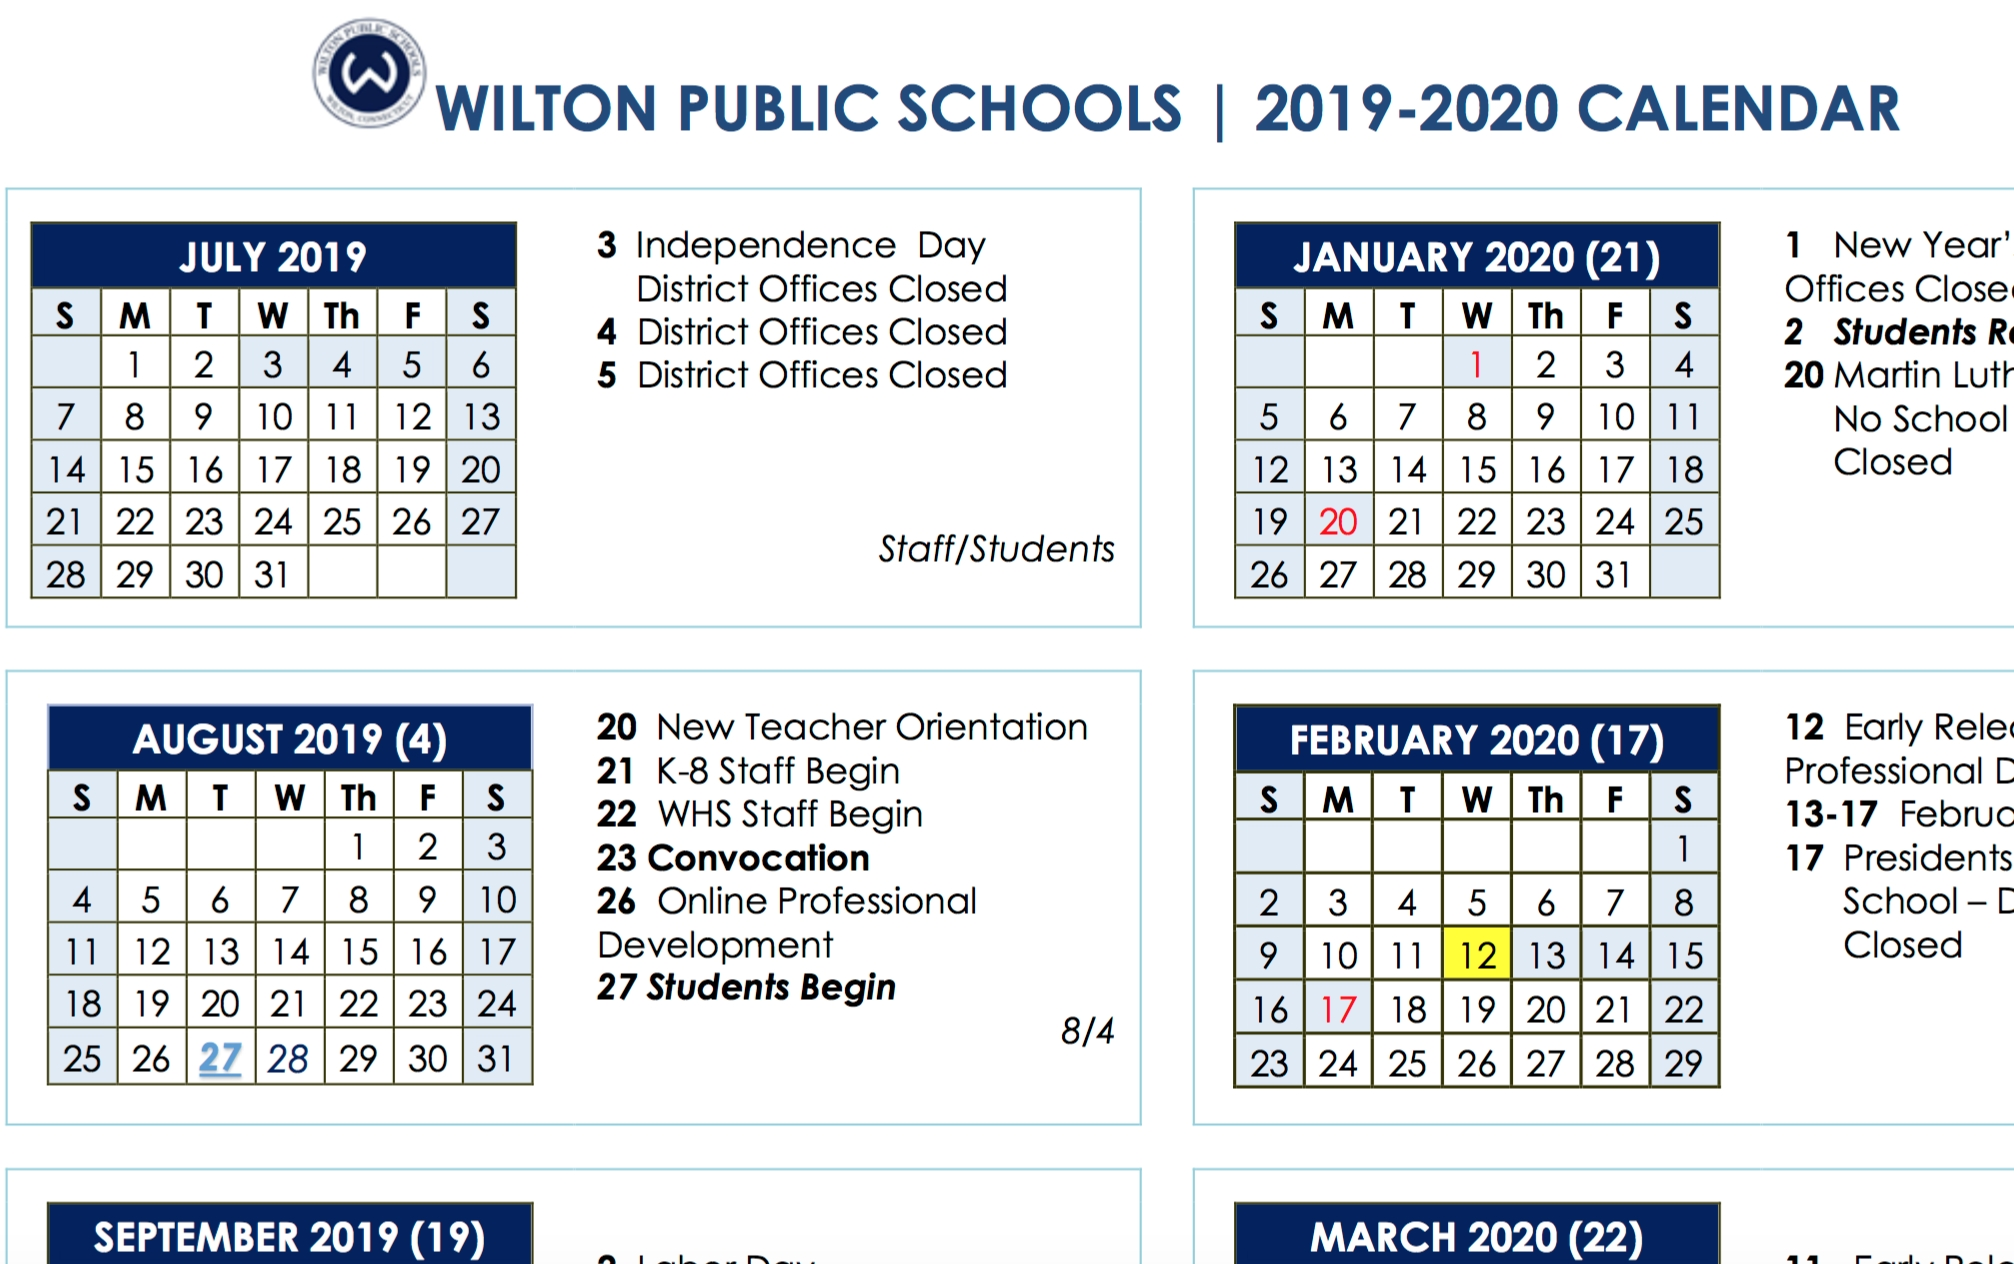 Board Of Education Approves 2019-2020 And 2020-2021 School Year_School Calendar January 2020